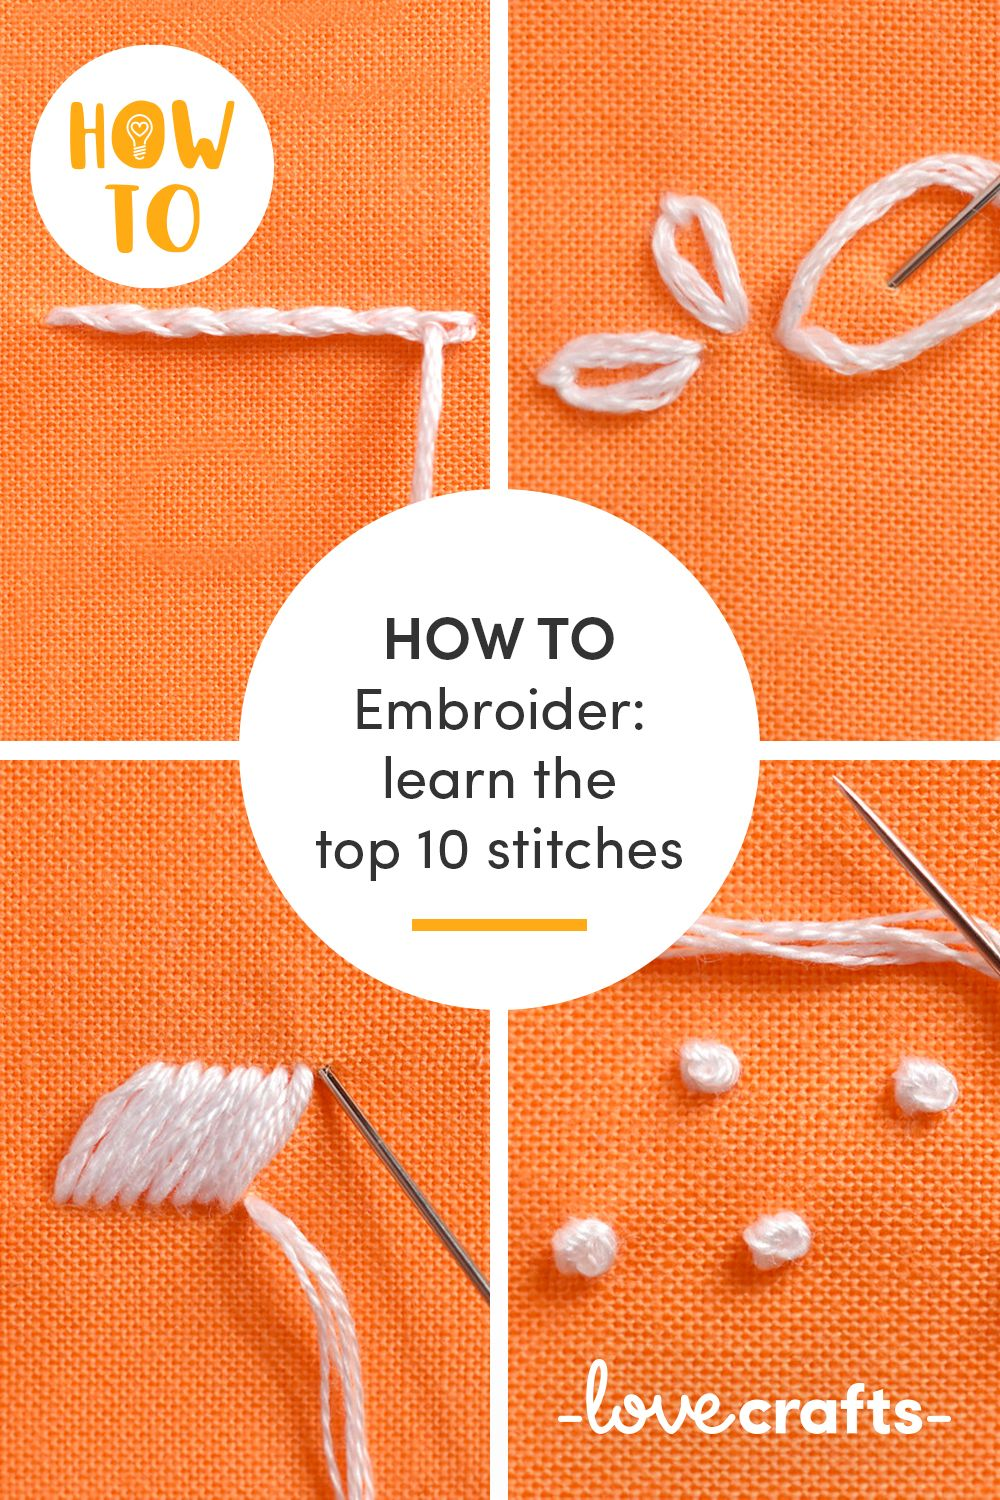 How to Embroider: 10 top stitches